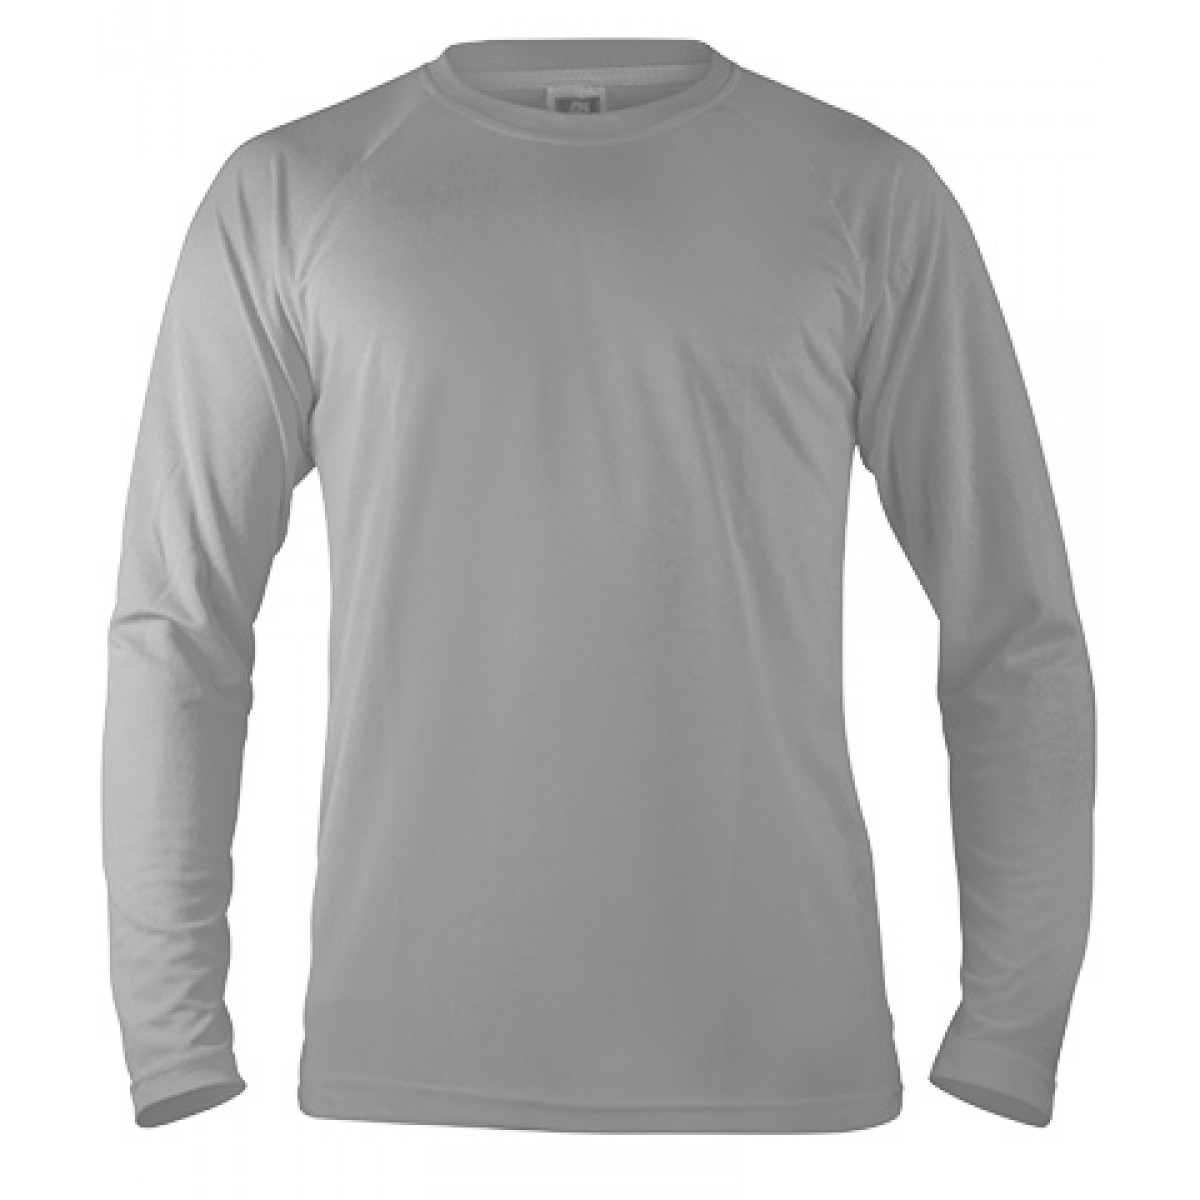 Long Sleeve Performance -Gray -M